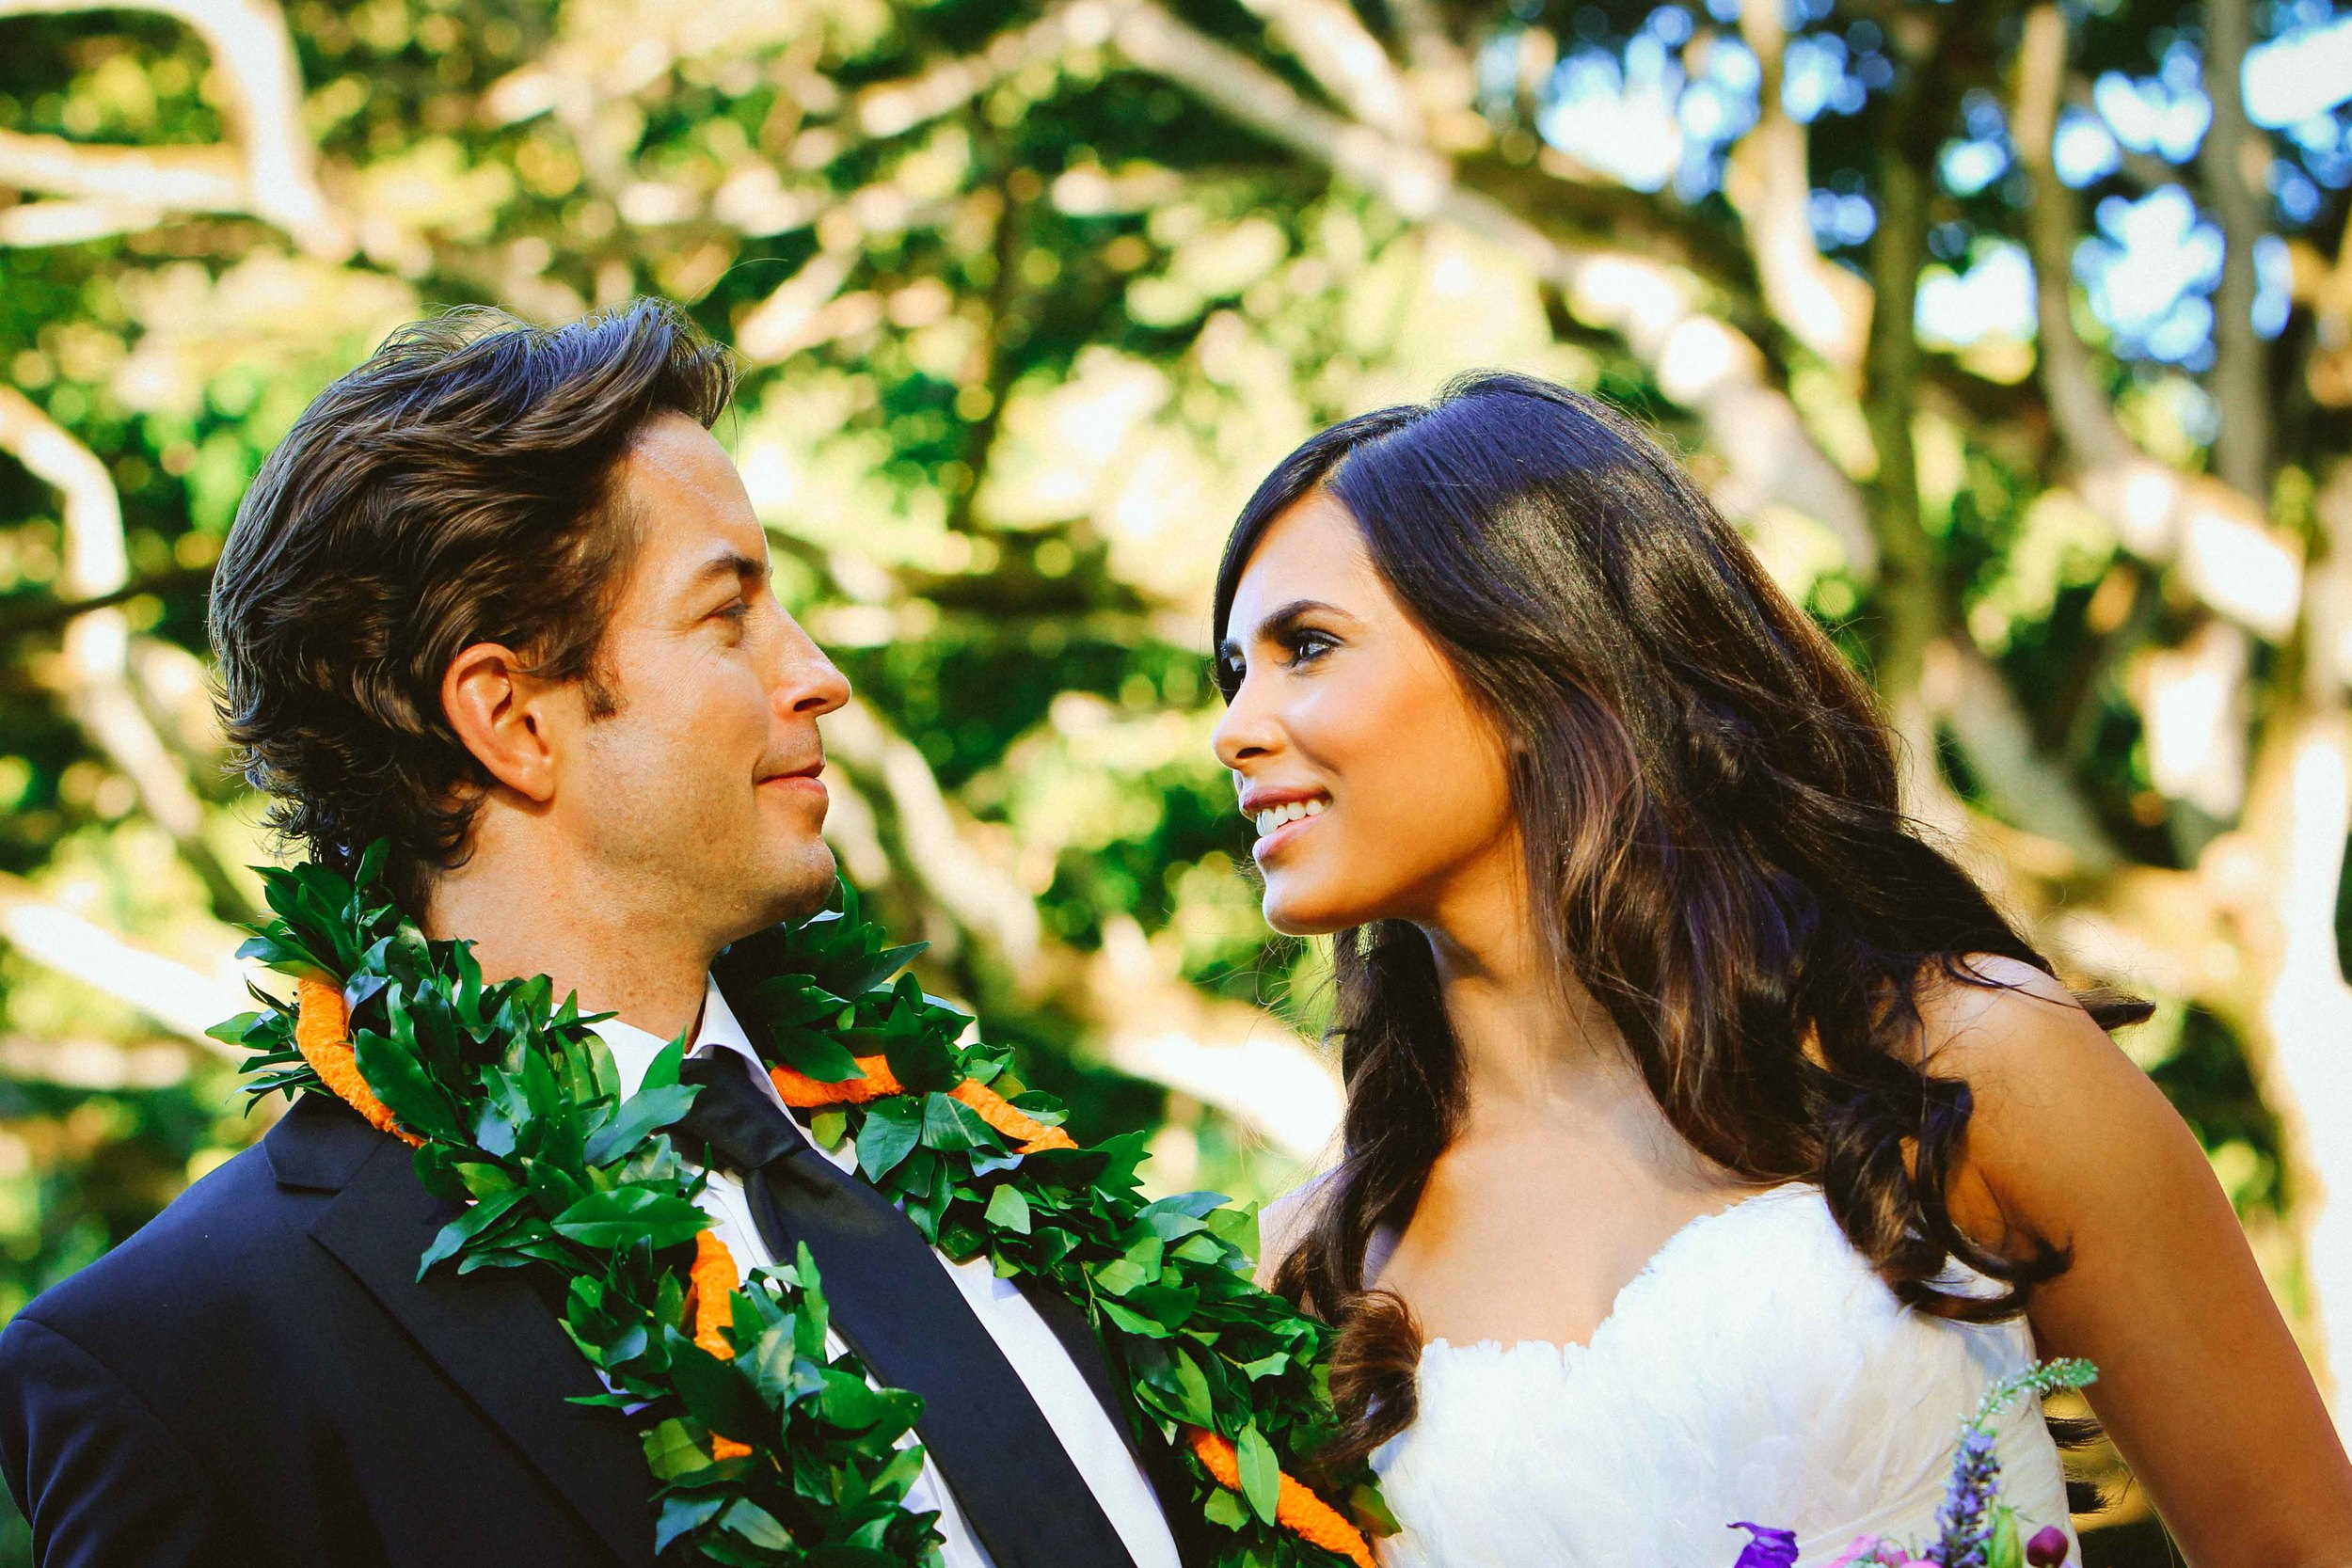 Artistic Wedding Photography Bride and Groom